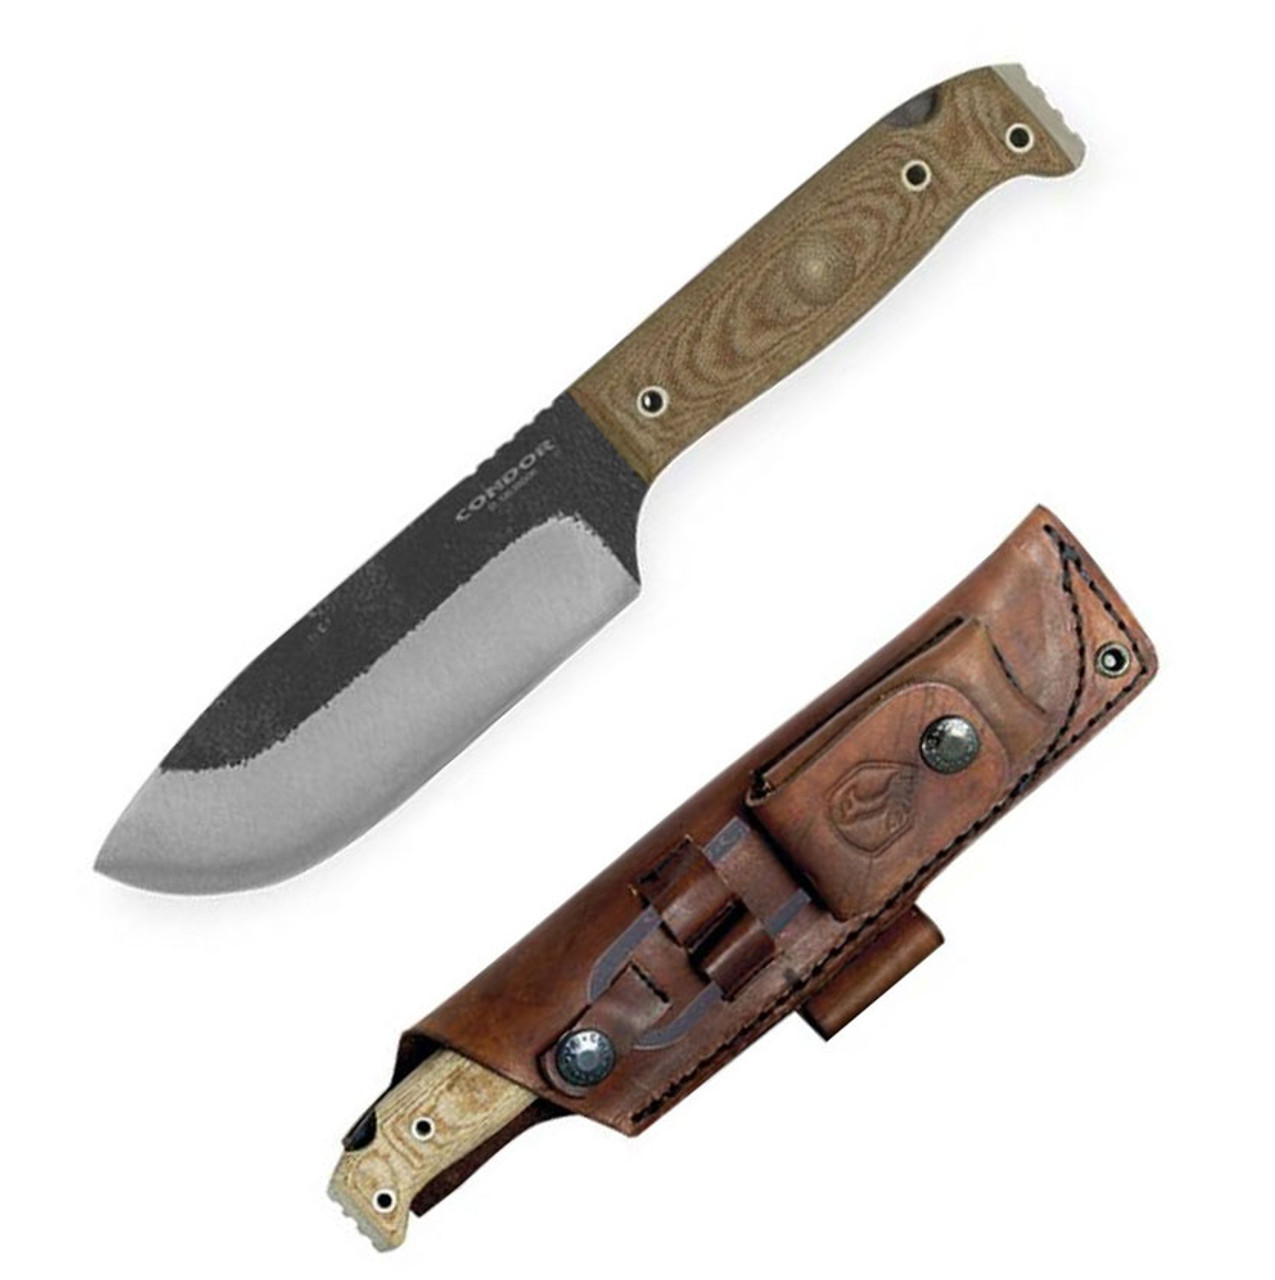 Condor Selknam Knife CTK3921-5.1HC, 5.1 in. 1075 High Carbon Steel, Micarta Handle